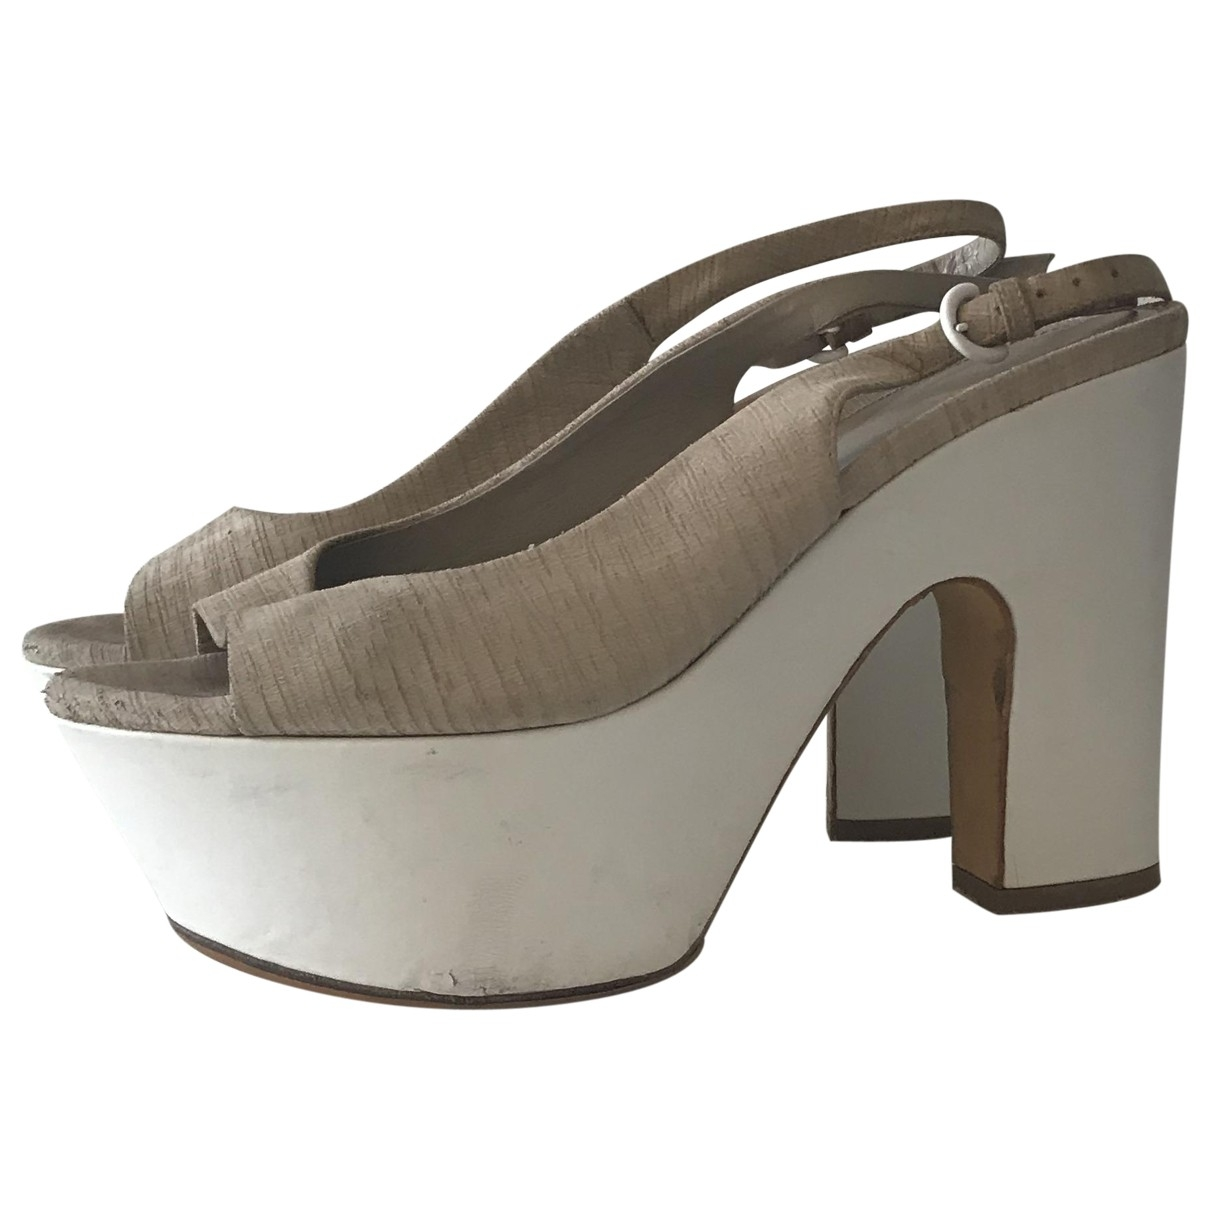 Sergio Rossi \N Beige Leather Sandals for Women 37 EU